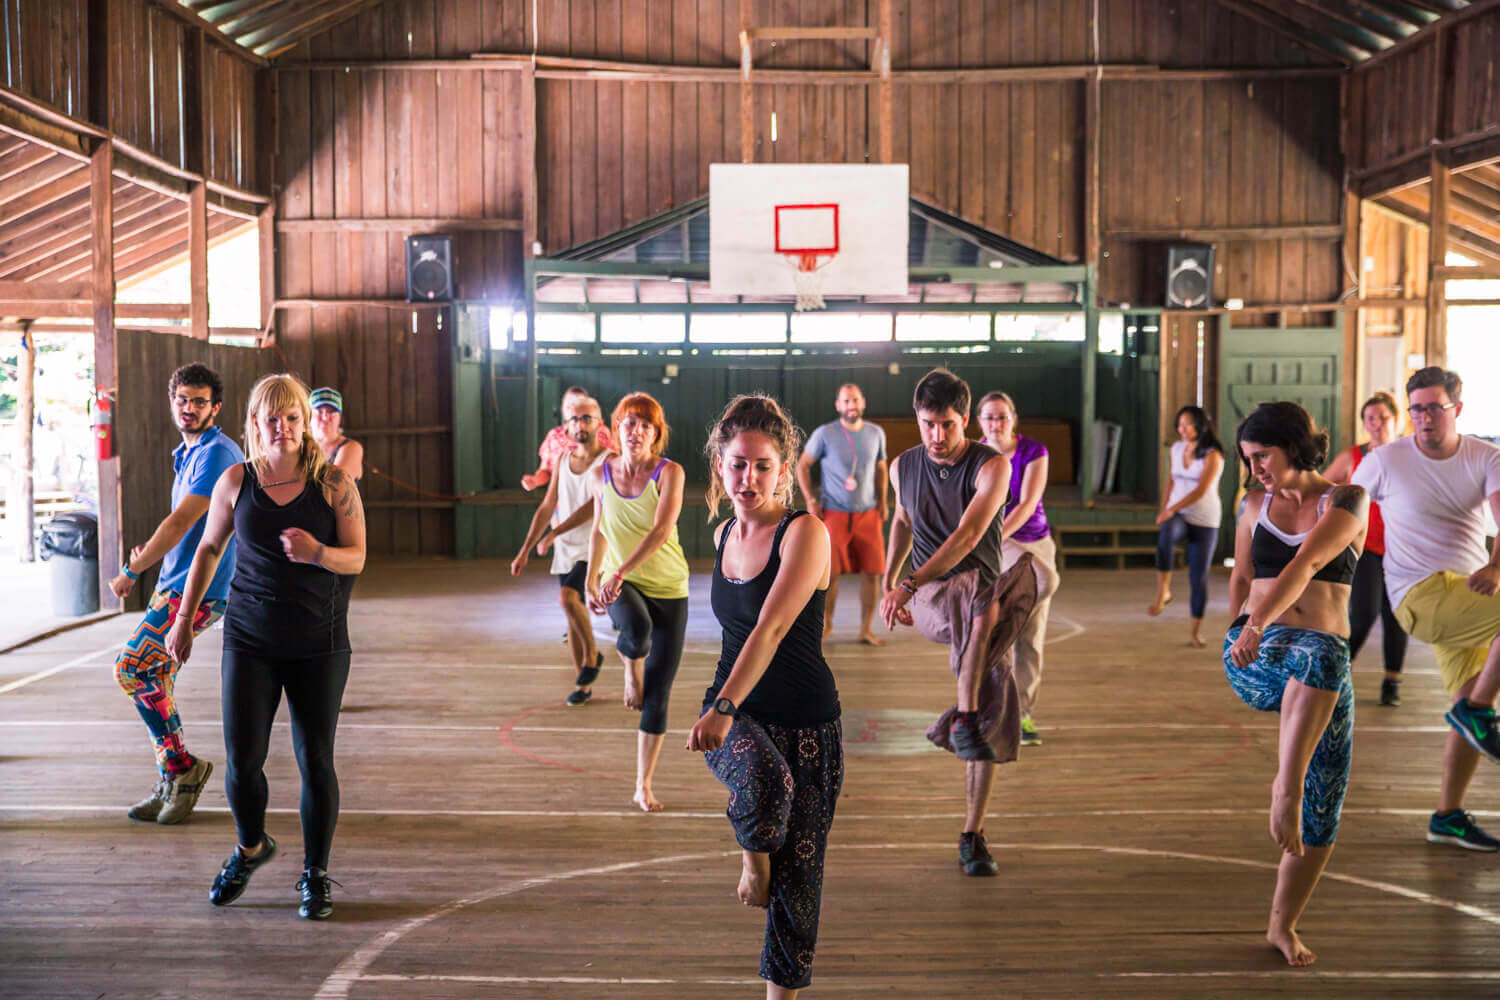 Group of campers dancing on an indoor basketball court